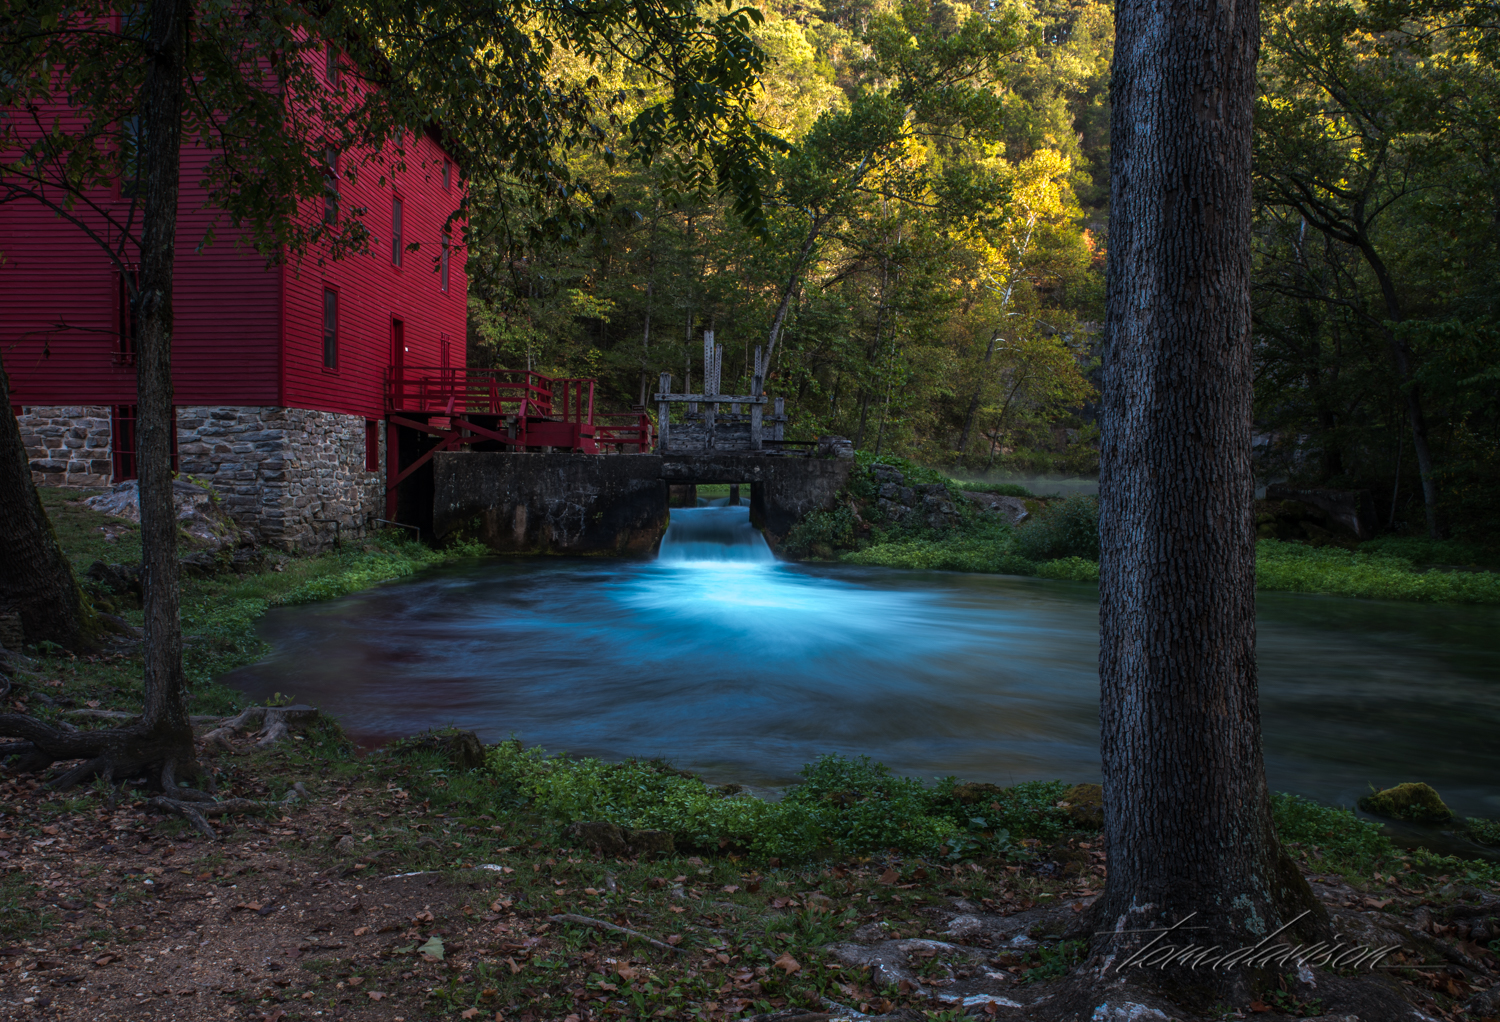 """As the sun rose, it was easier to appreciate the richness of the scene. Are you thinking, """"Where is the waterwheel?"""" This mill did not have one! Instead, it was built in 1894 with what was considered modern machinery at the time. Steel rollers were used for grinding and the exterior water wheel was replaced by a submerged turbine. The speed of the turbine was controlled by managing the amount of water that went through the 'gate'."""